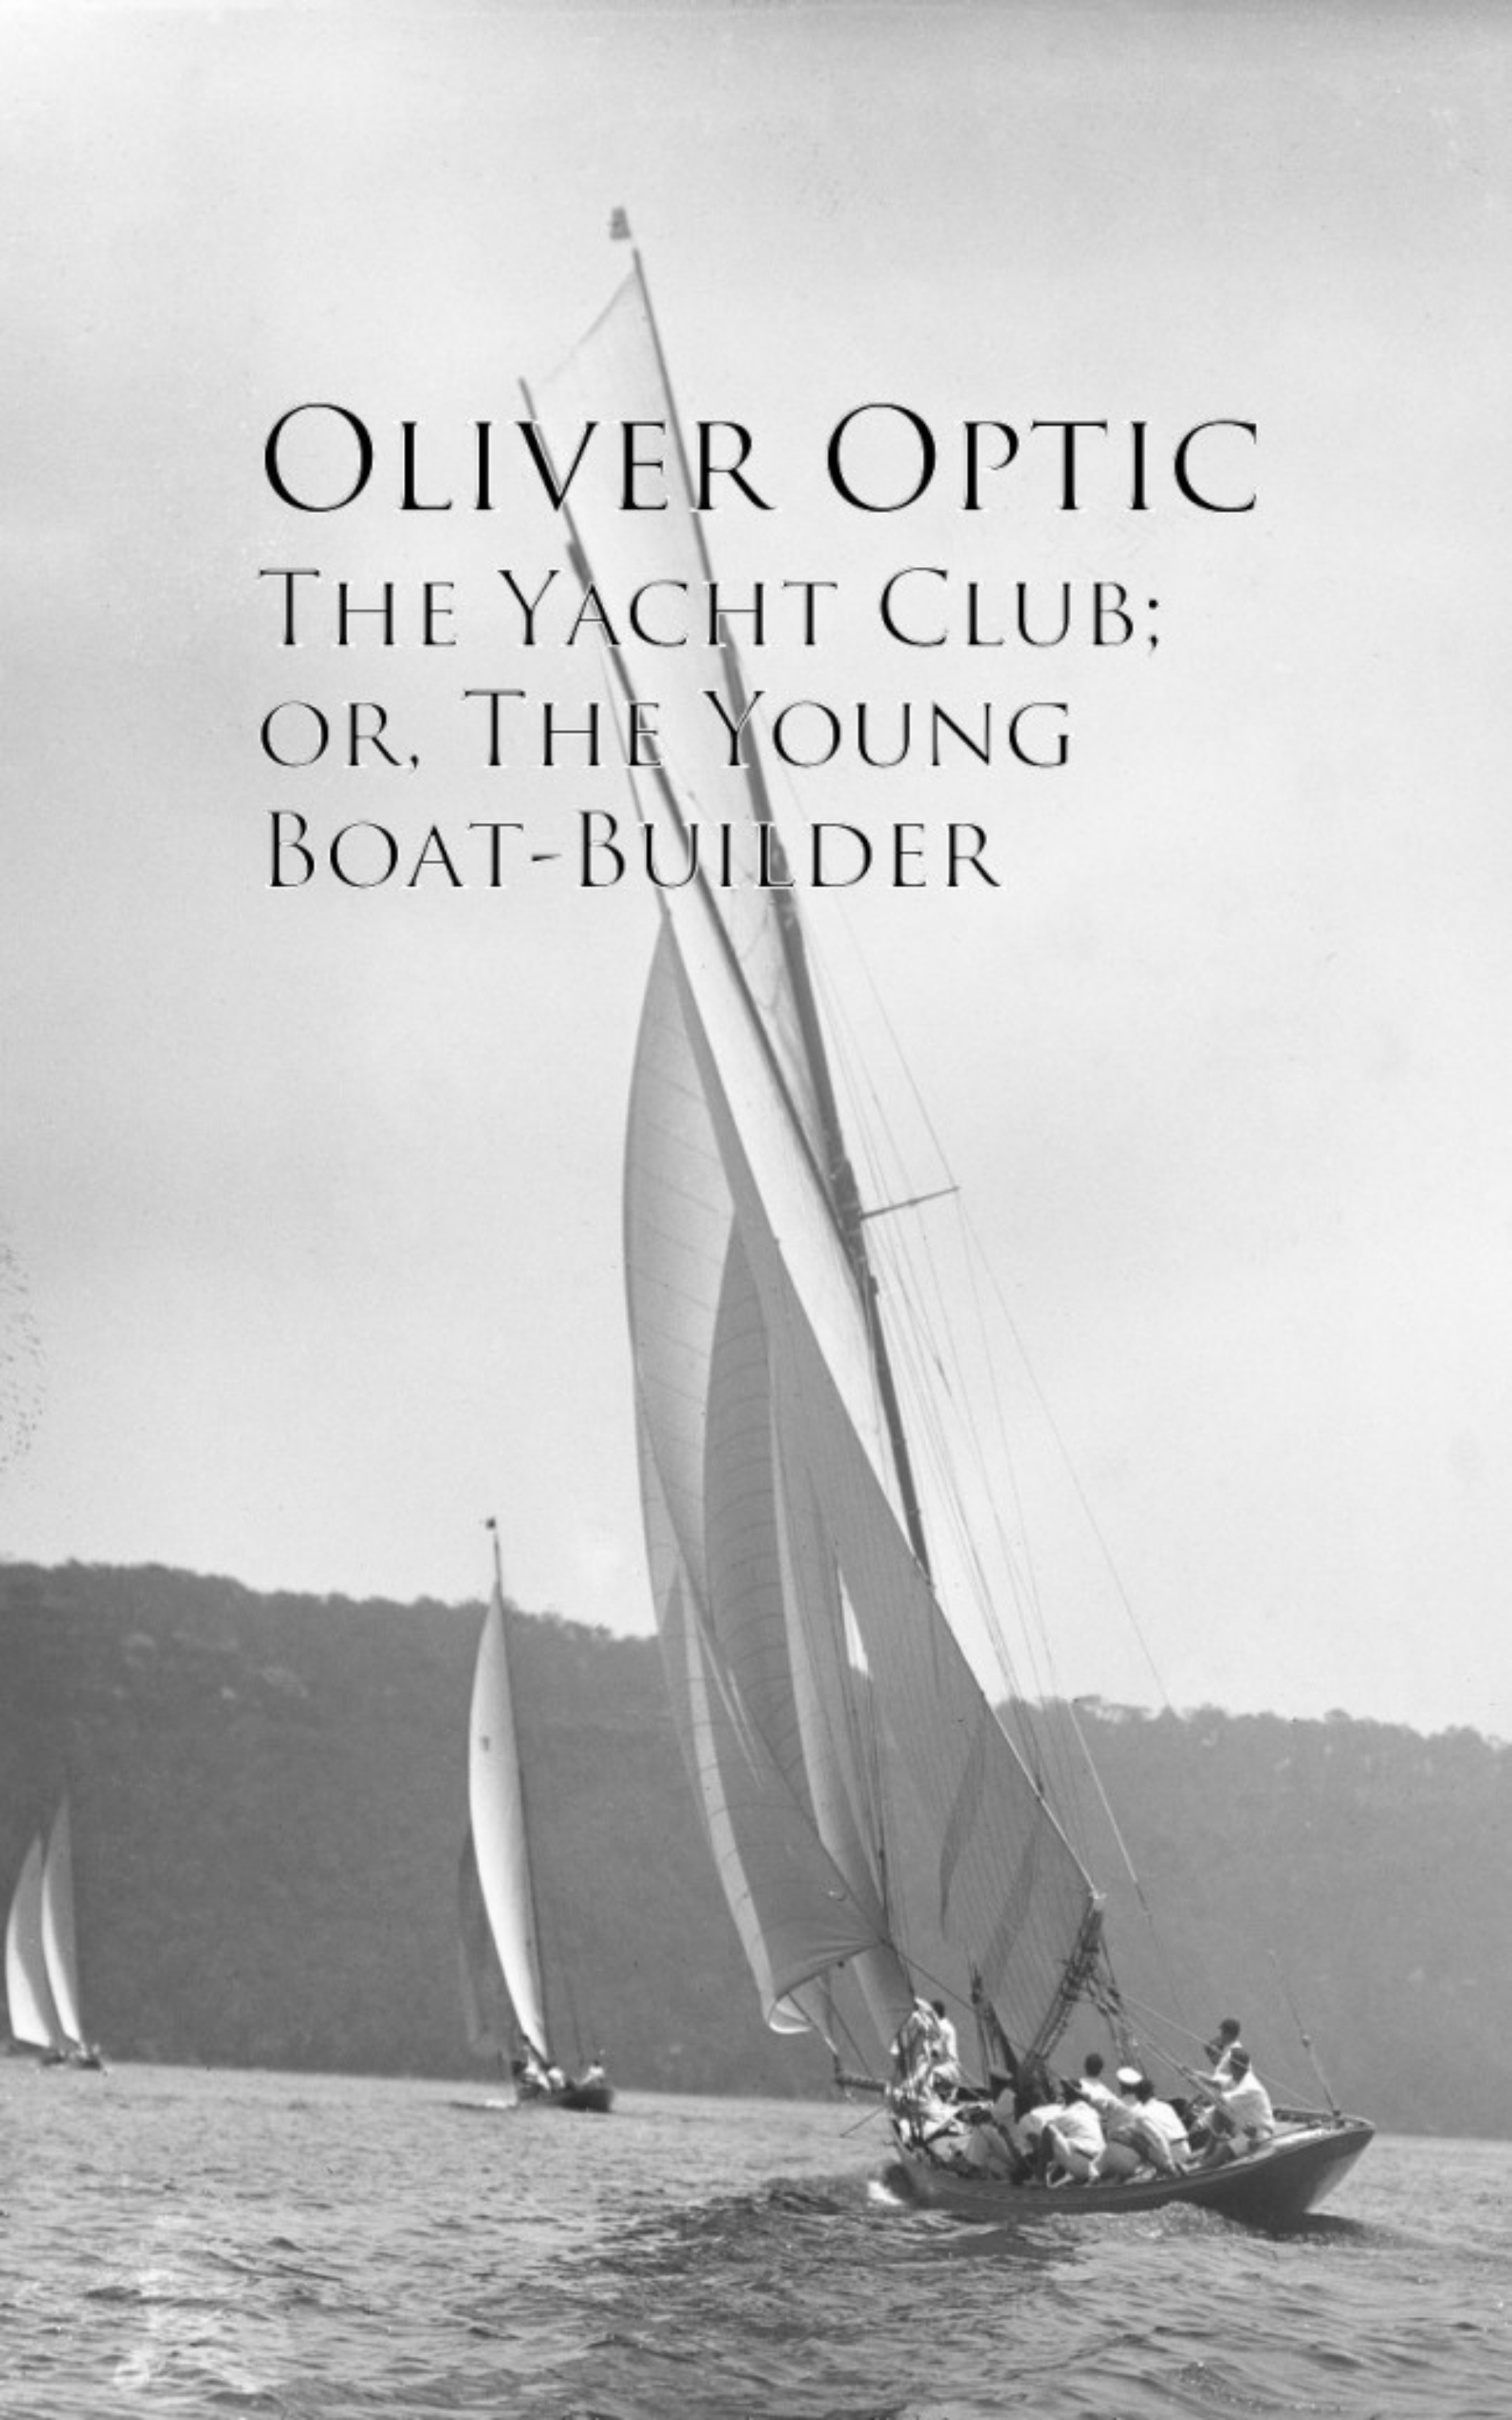 Oliver Optic The Yacht Club; or, The Young Boat-Builder